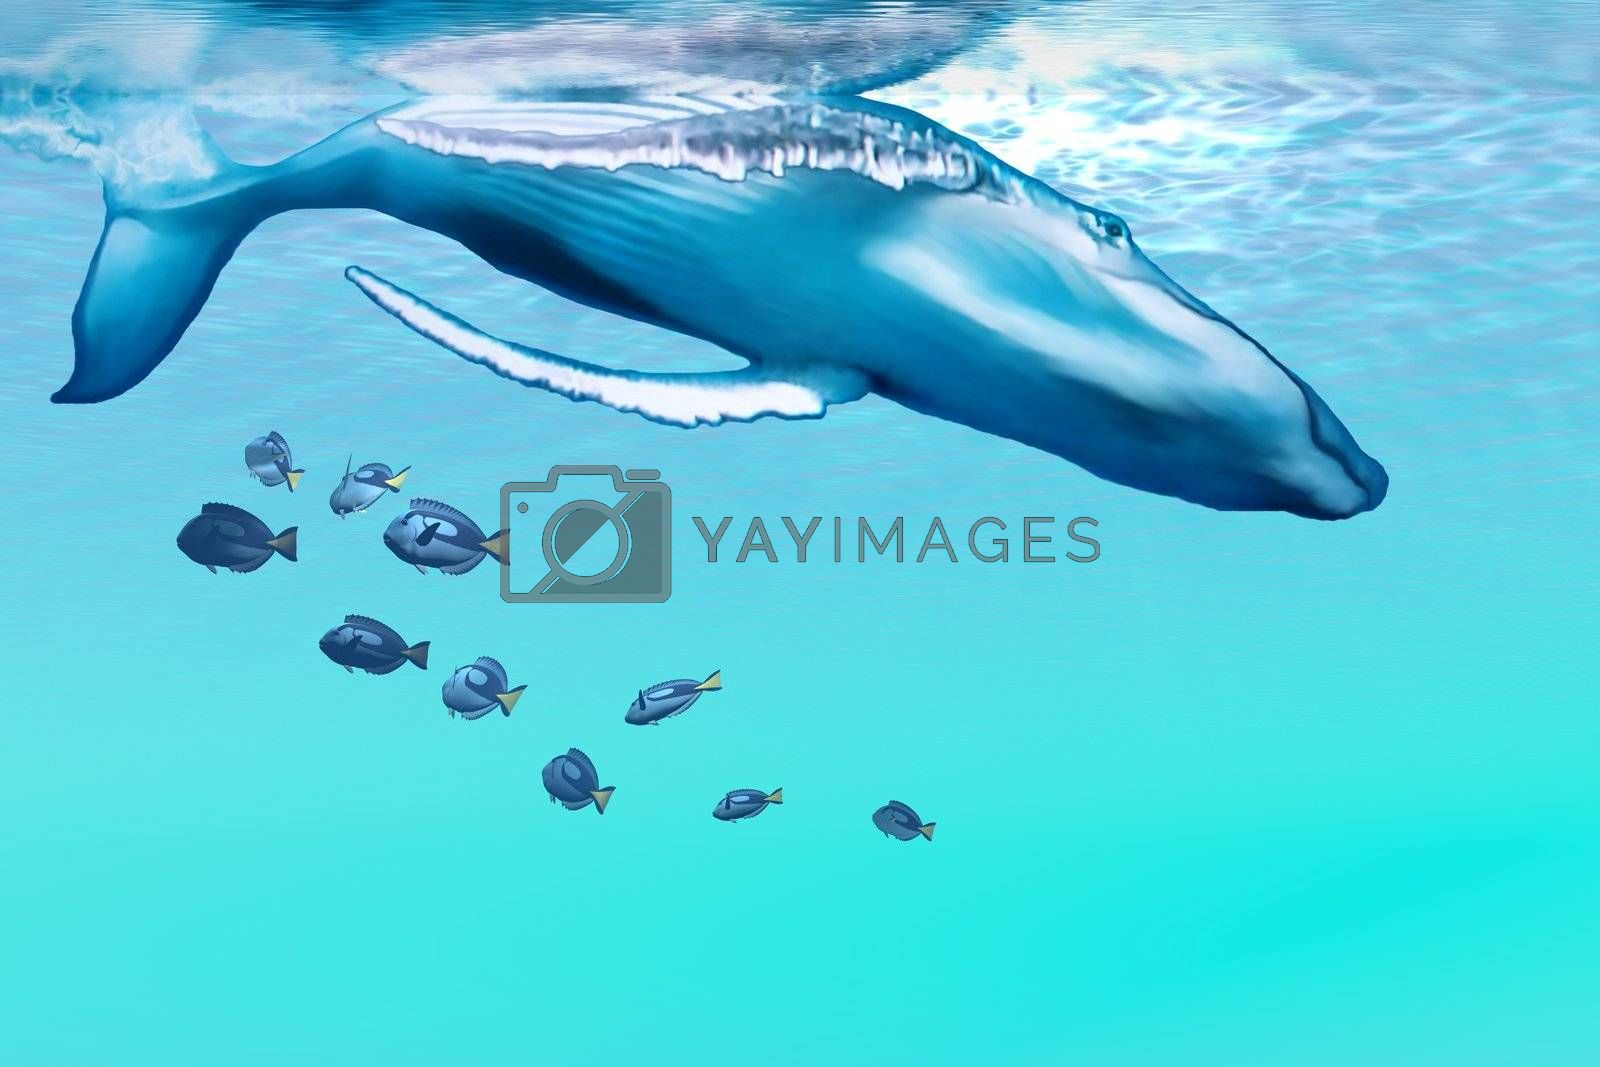 A Humpback whale dives into the blue ocean.